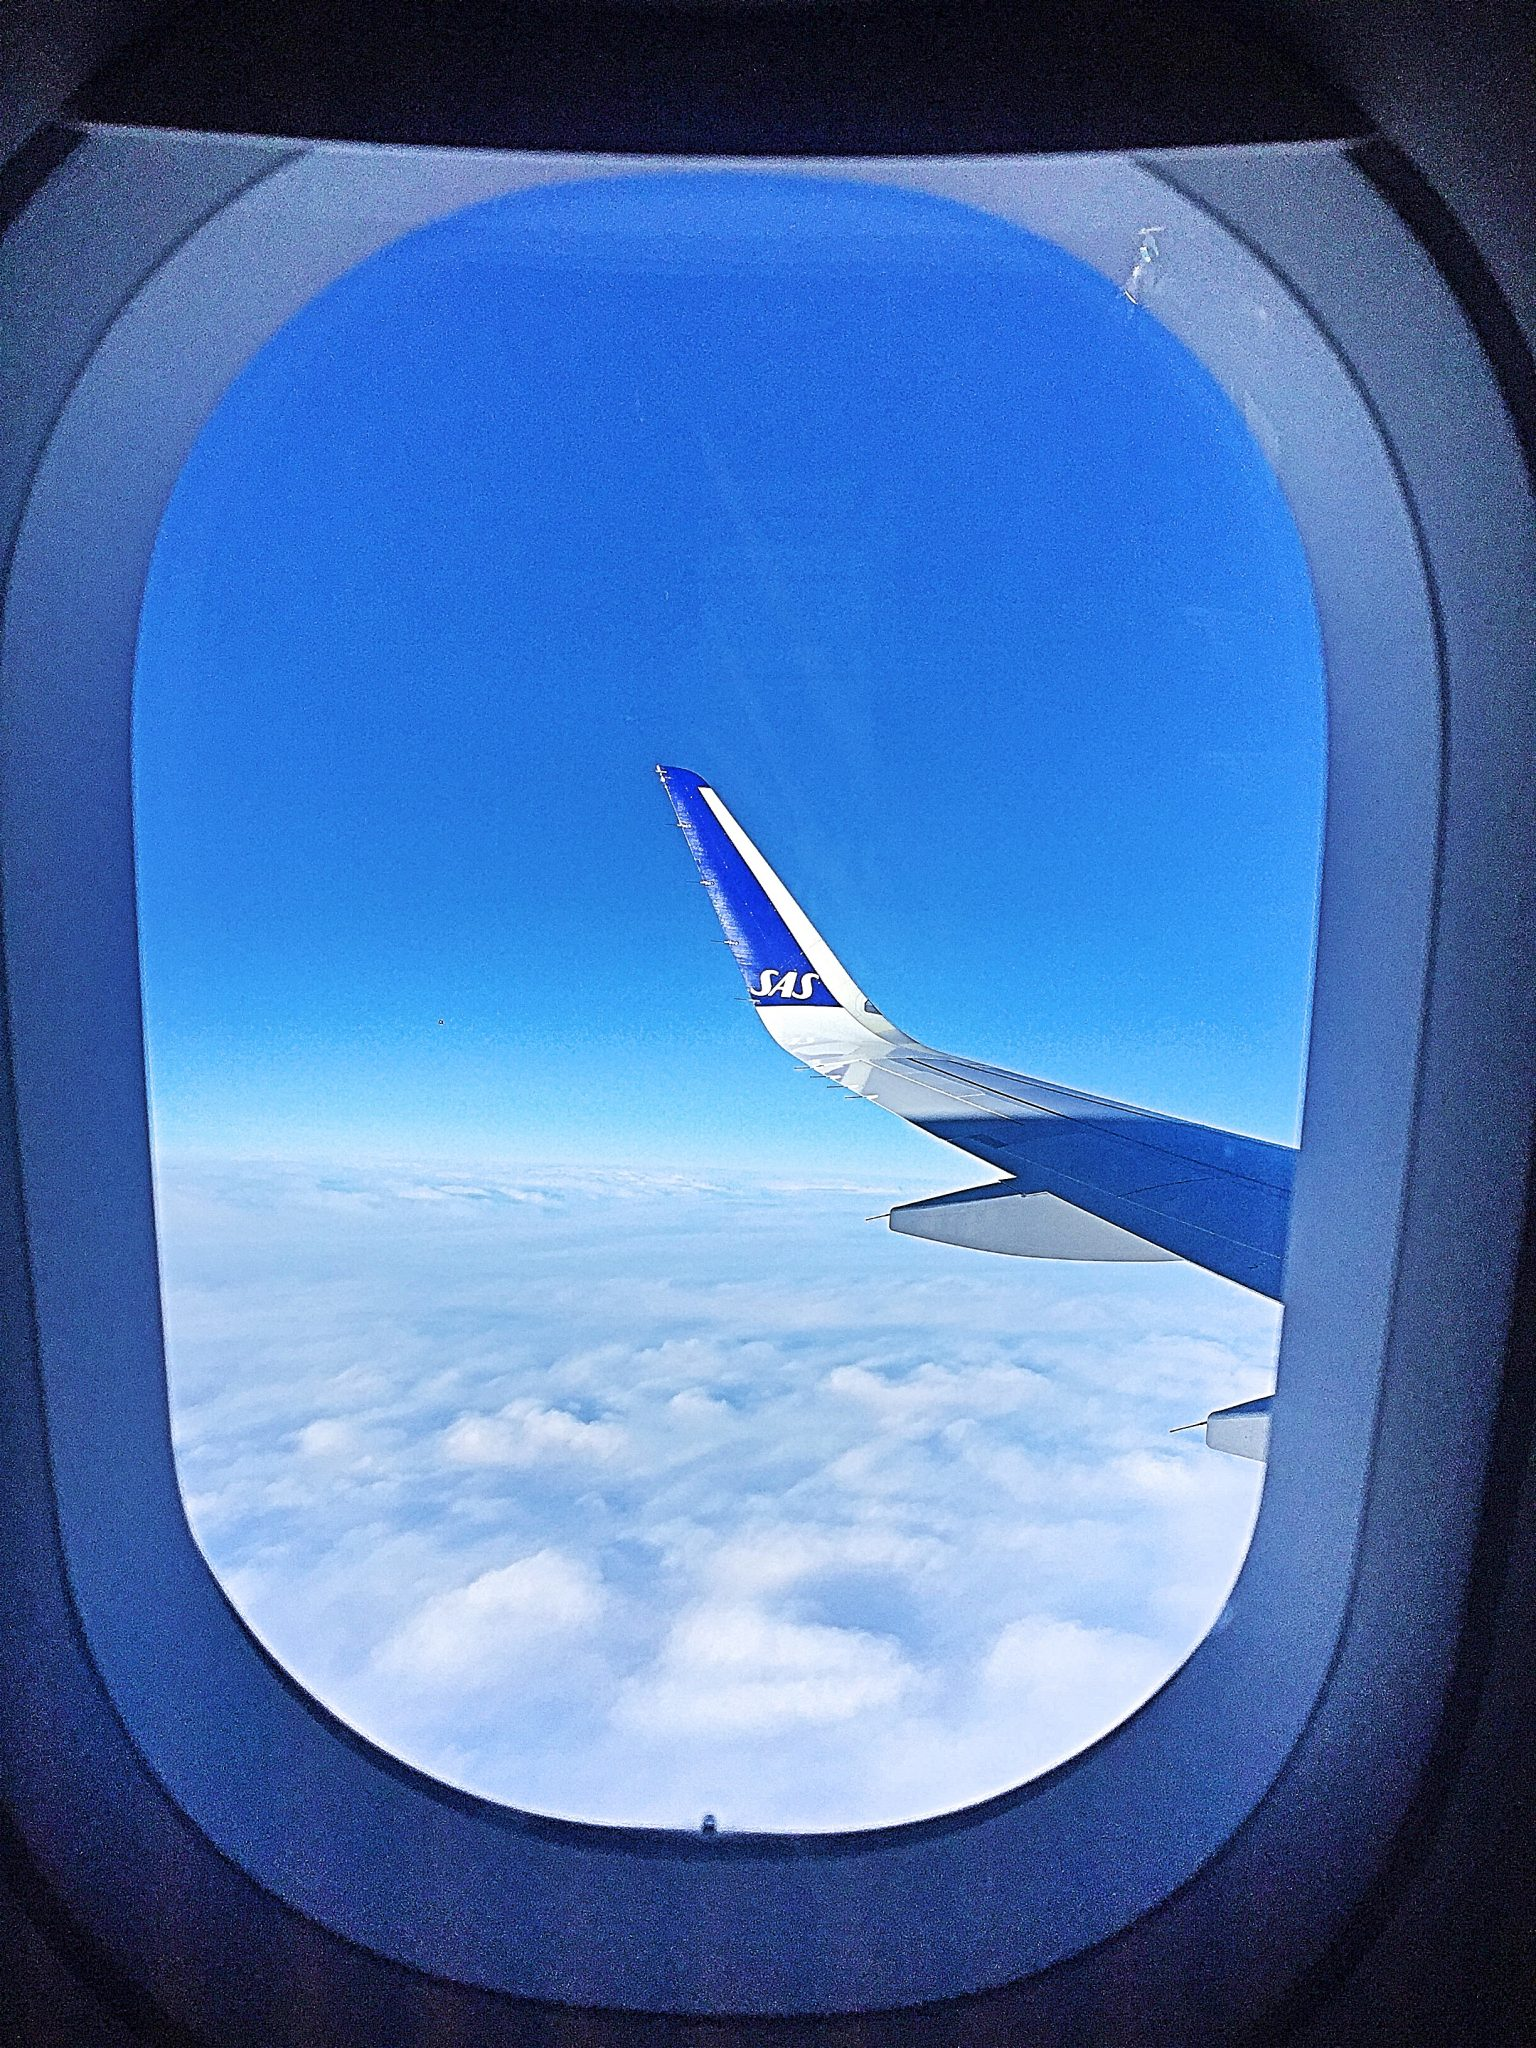 Scandinavian Airline Systems